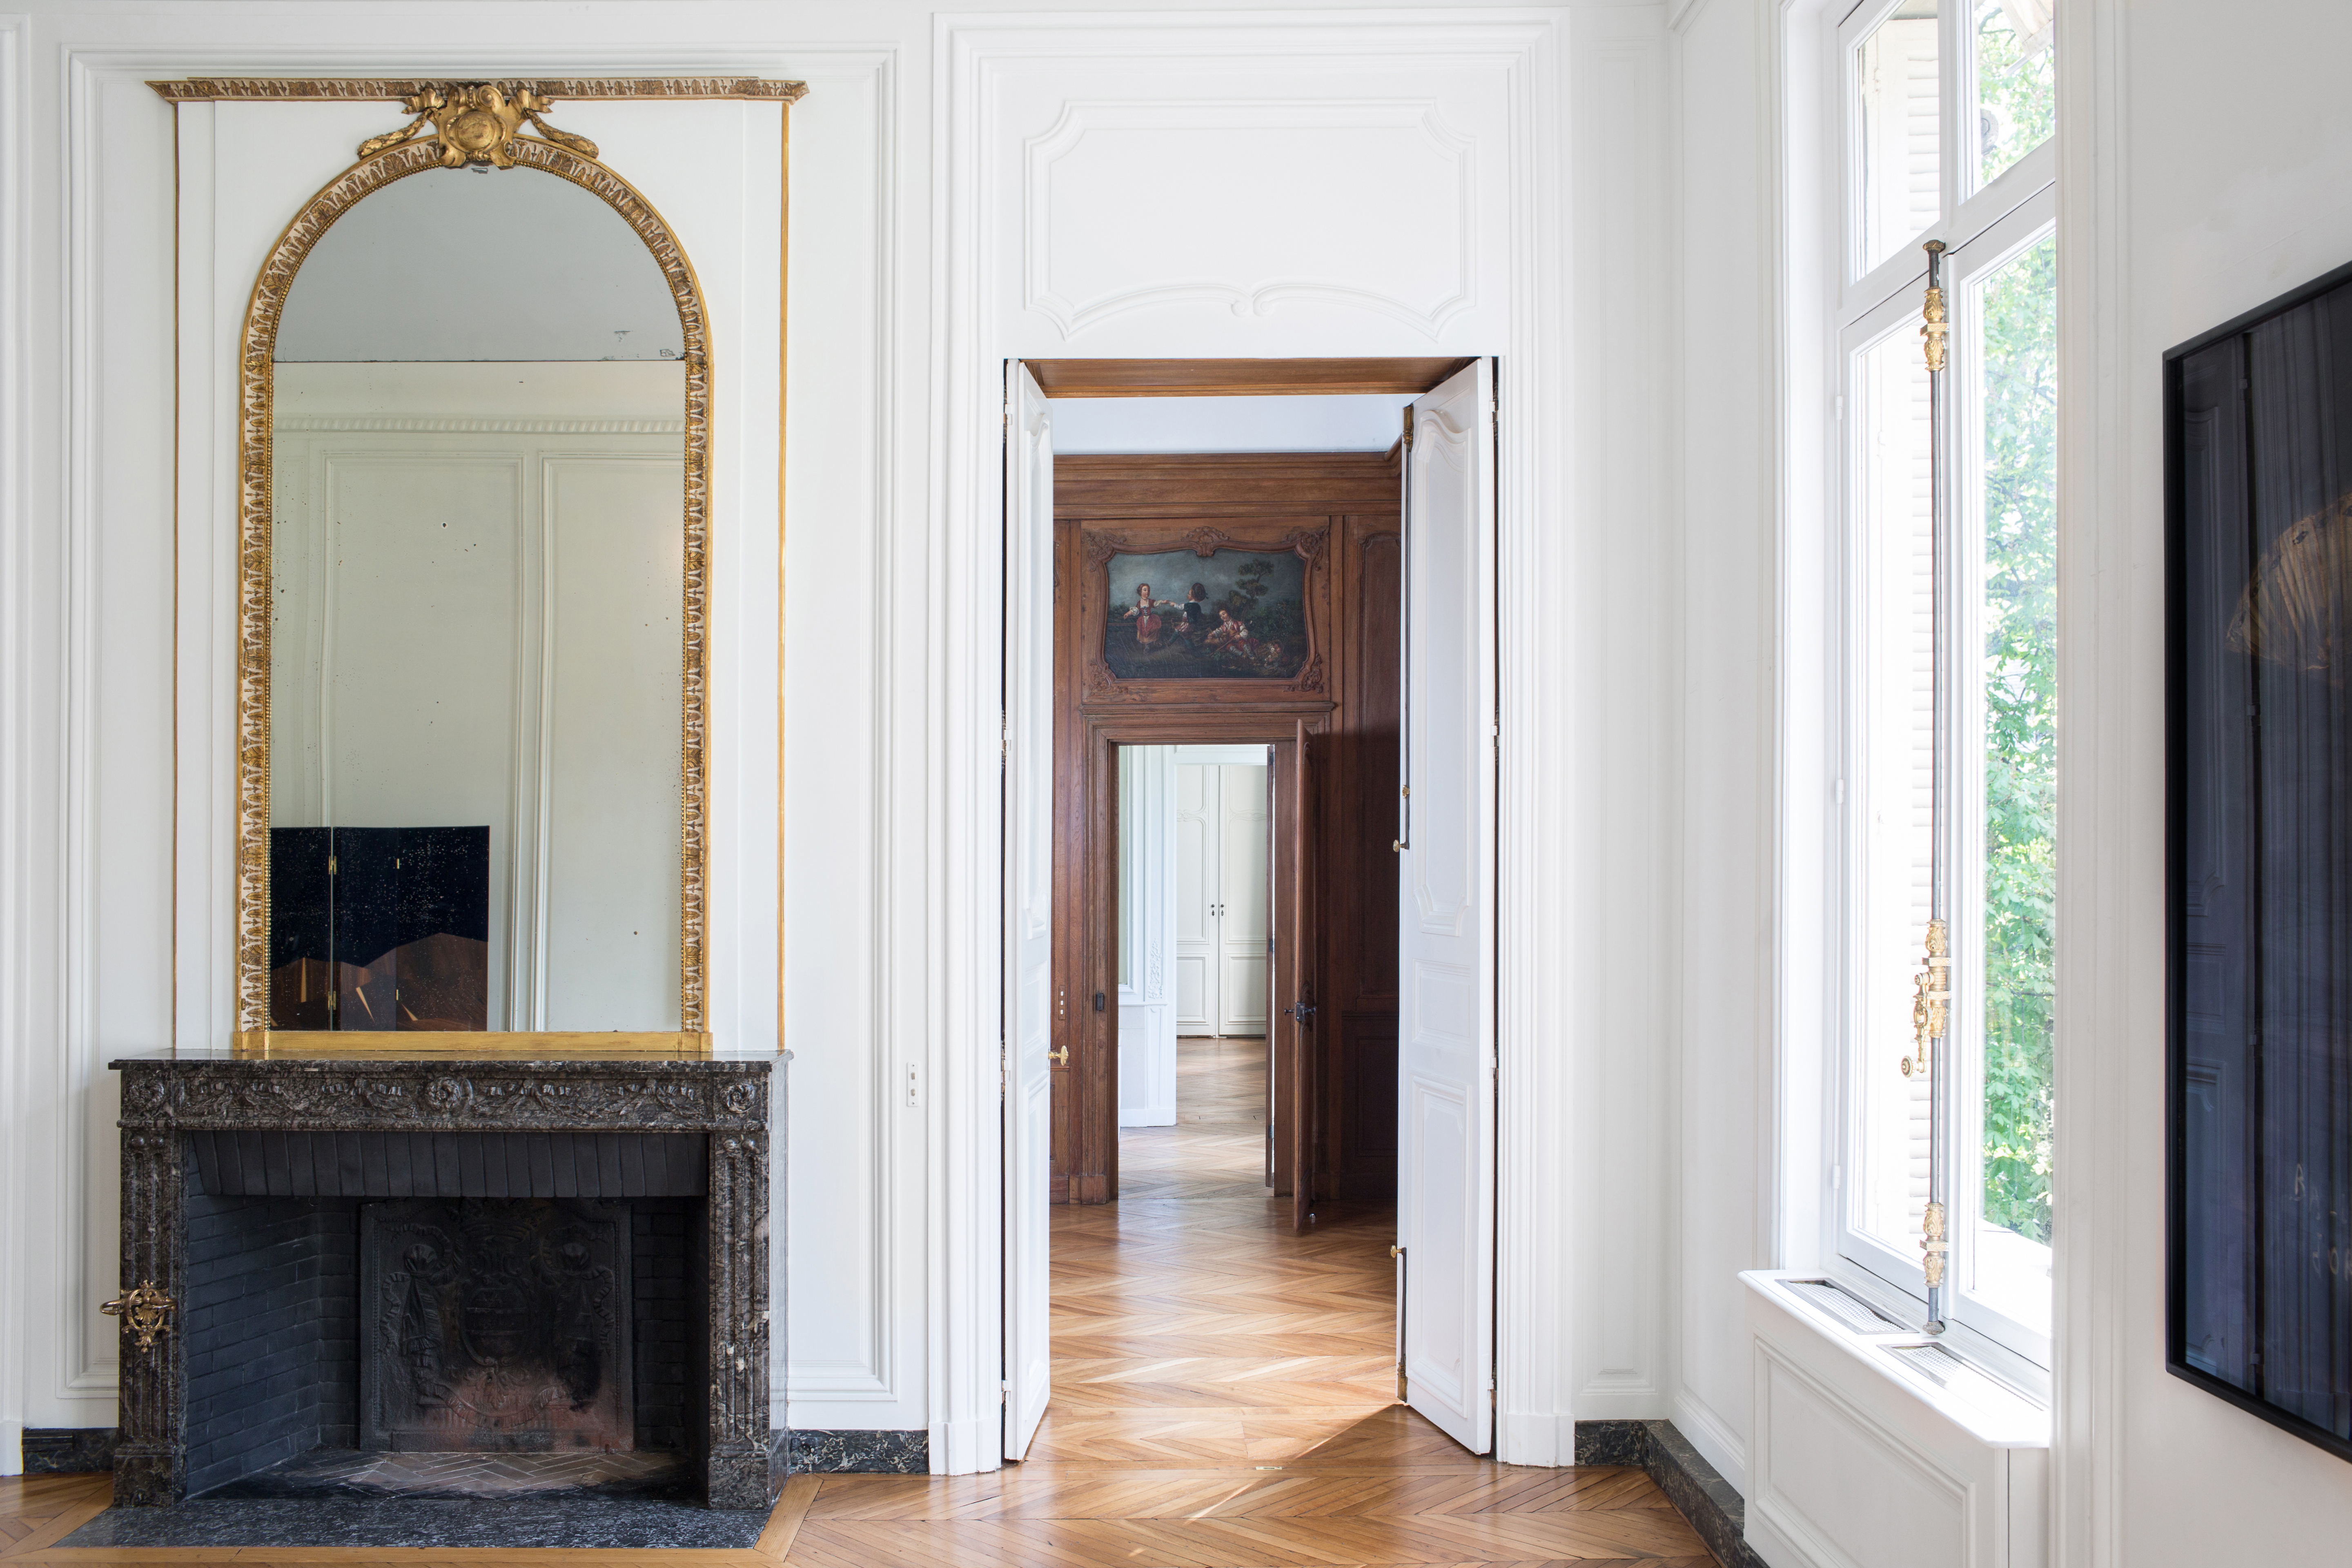 The Afterlife Of Coco Chanels Impressive Apartment In Parisu0027 Distinguished  8th Arrondissement: You Can Rent It For Your Brand Campaign.